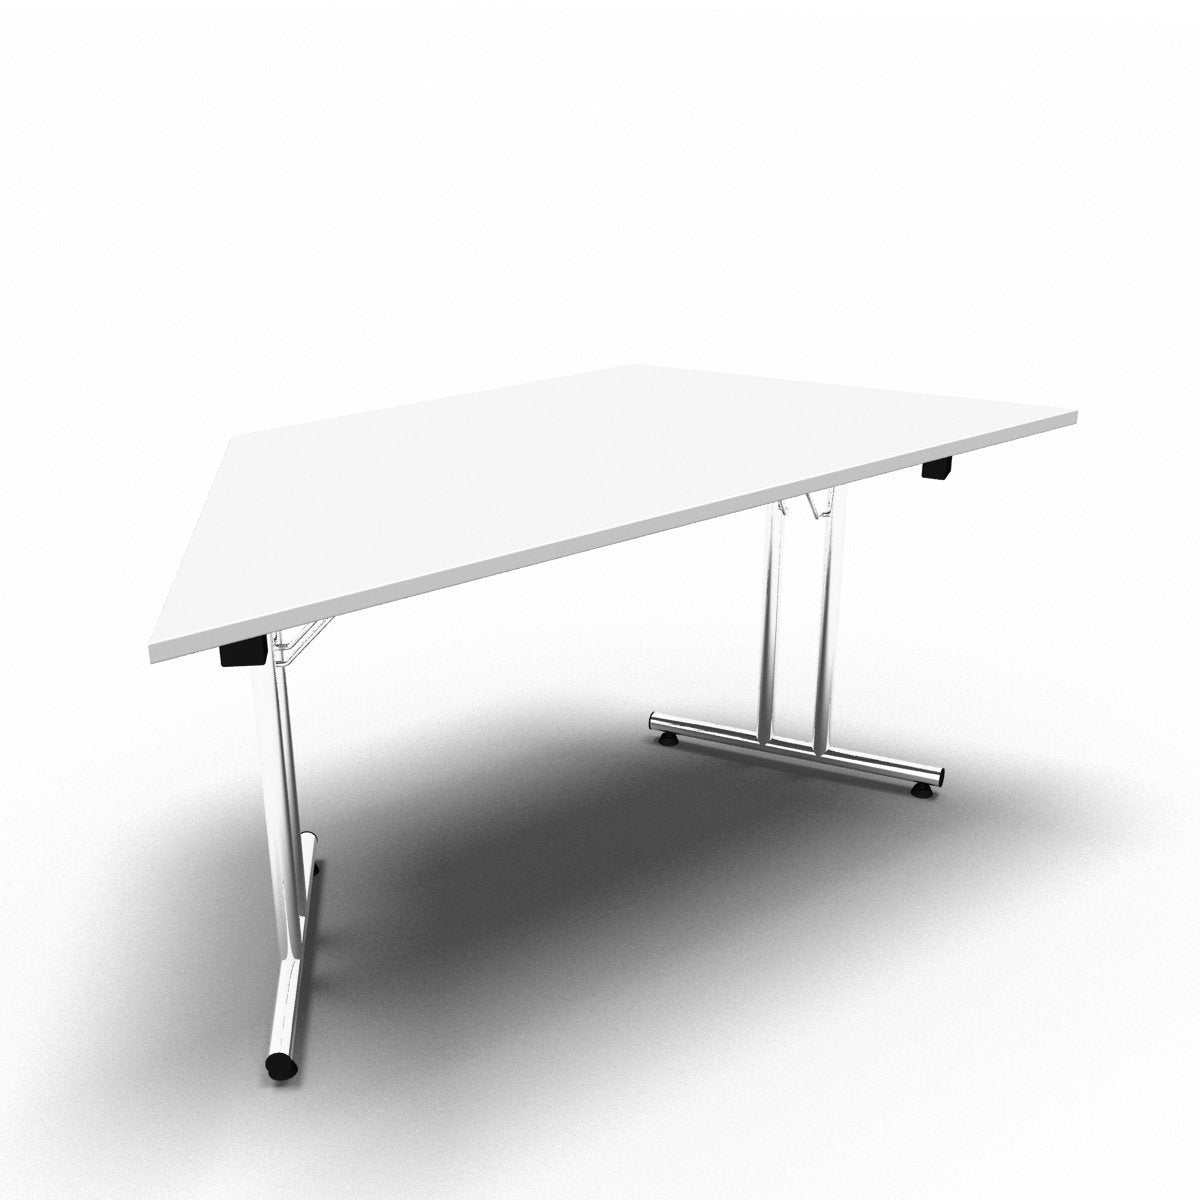 Table 1600 x 800 x 730mm / Trapezoidal / White Synergy Folding Tables